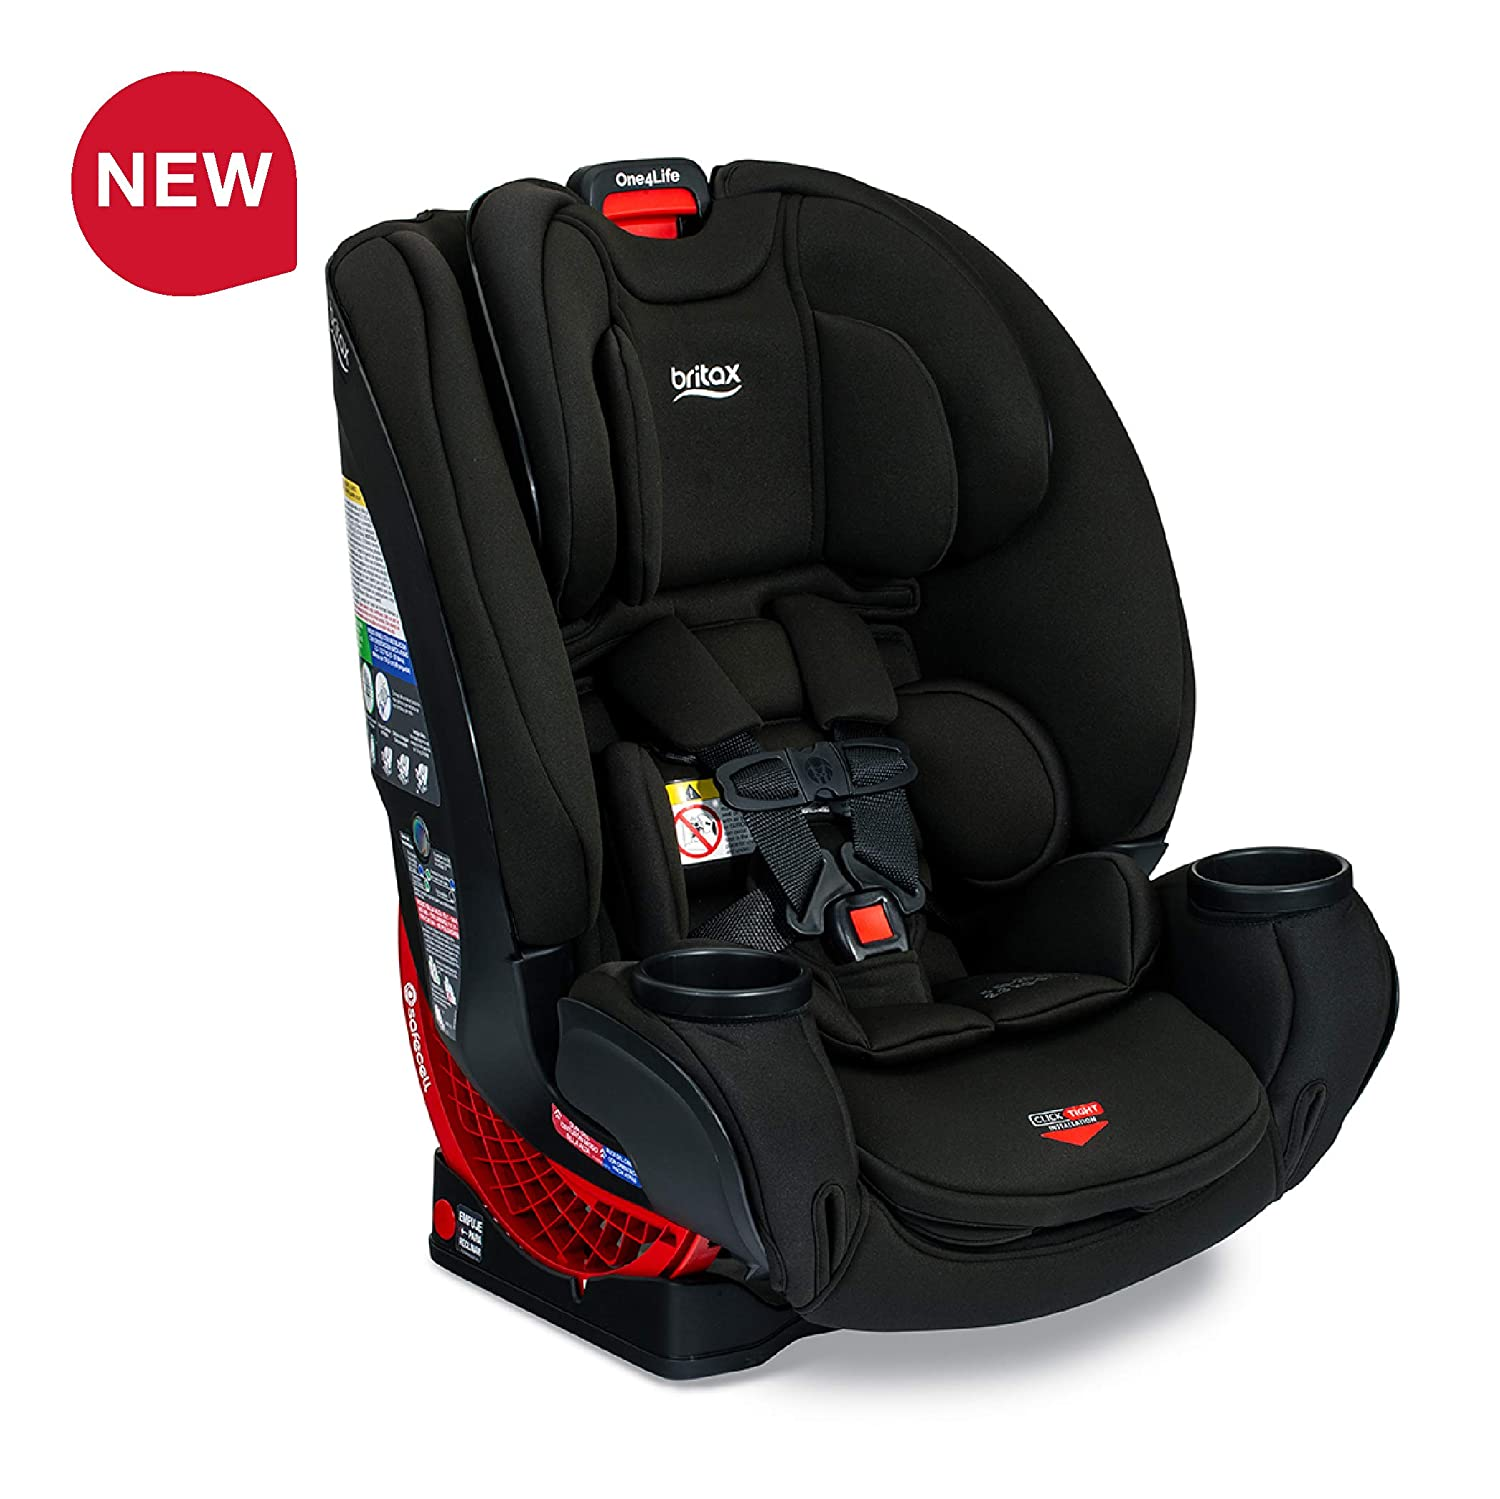 Britax One4Life ClickTight All-In-One Car Seat – 10 Years of Use – Infant, Convertible, Booster – 5 to 120 pounds - SafeWash Fabric, Eclipse Black